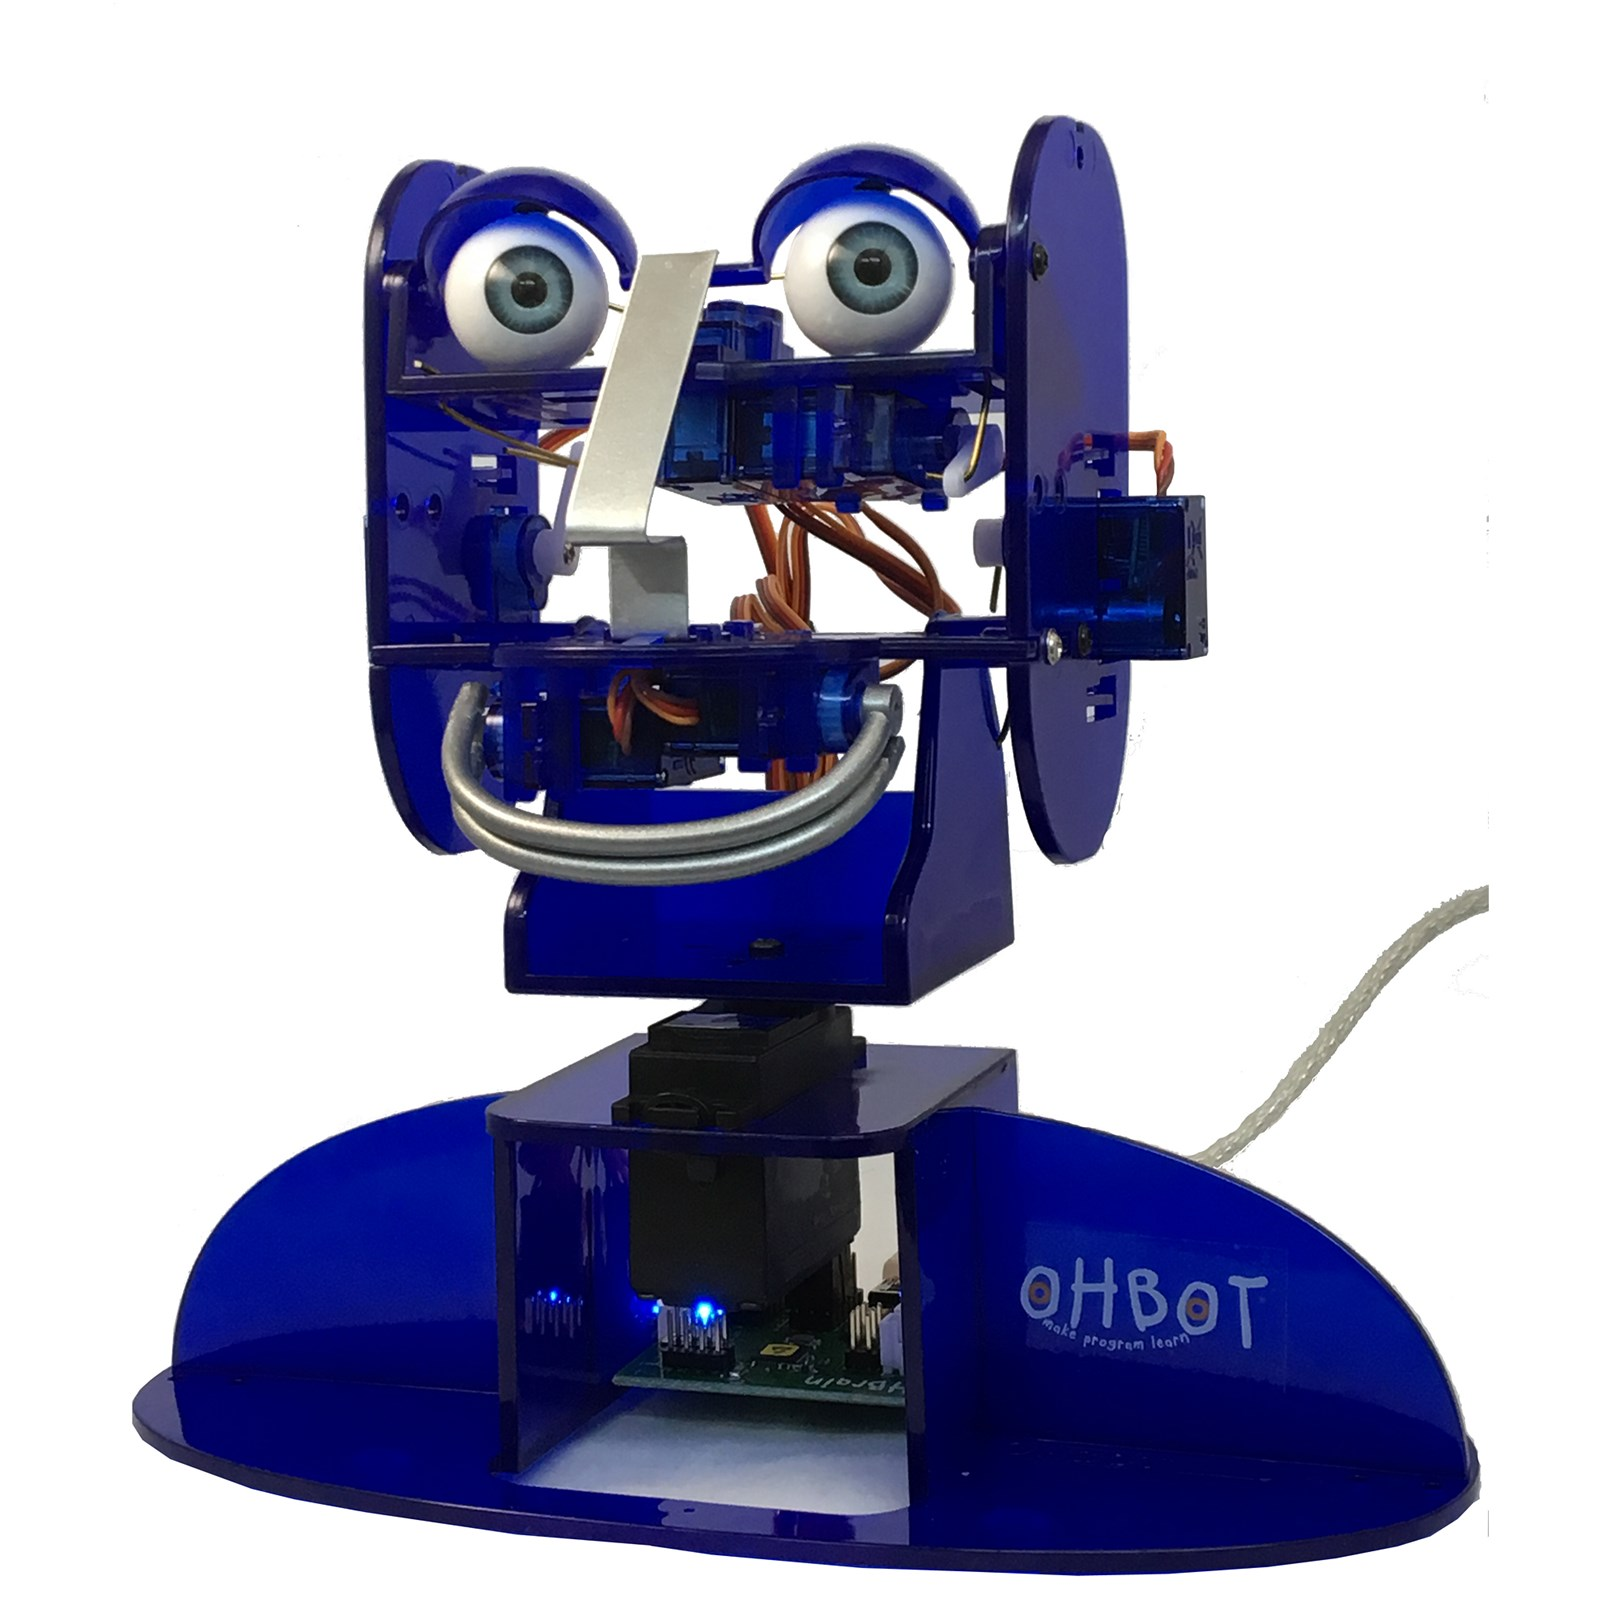 Ohbot 2.1 Educational Robot Assembled with 4 user software licence for Windows